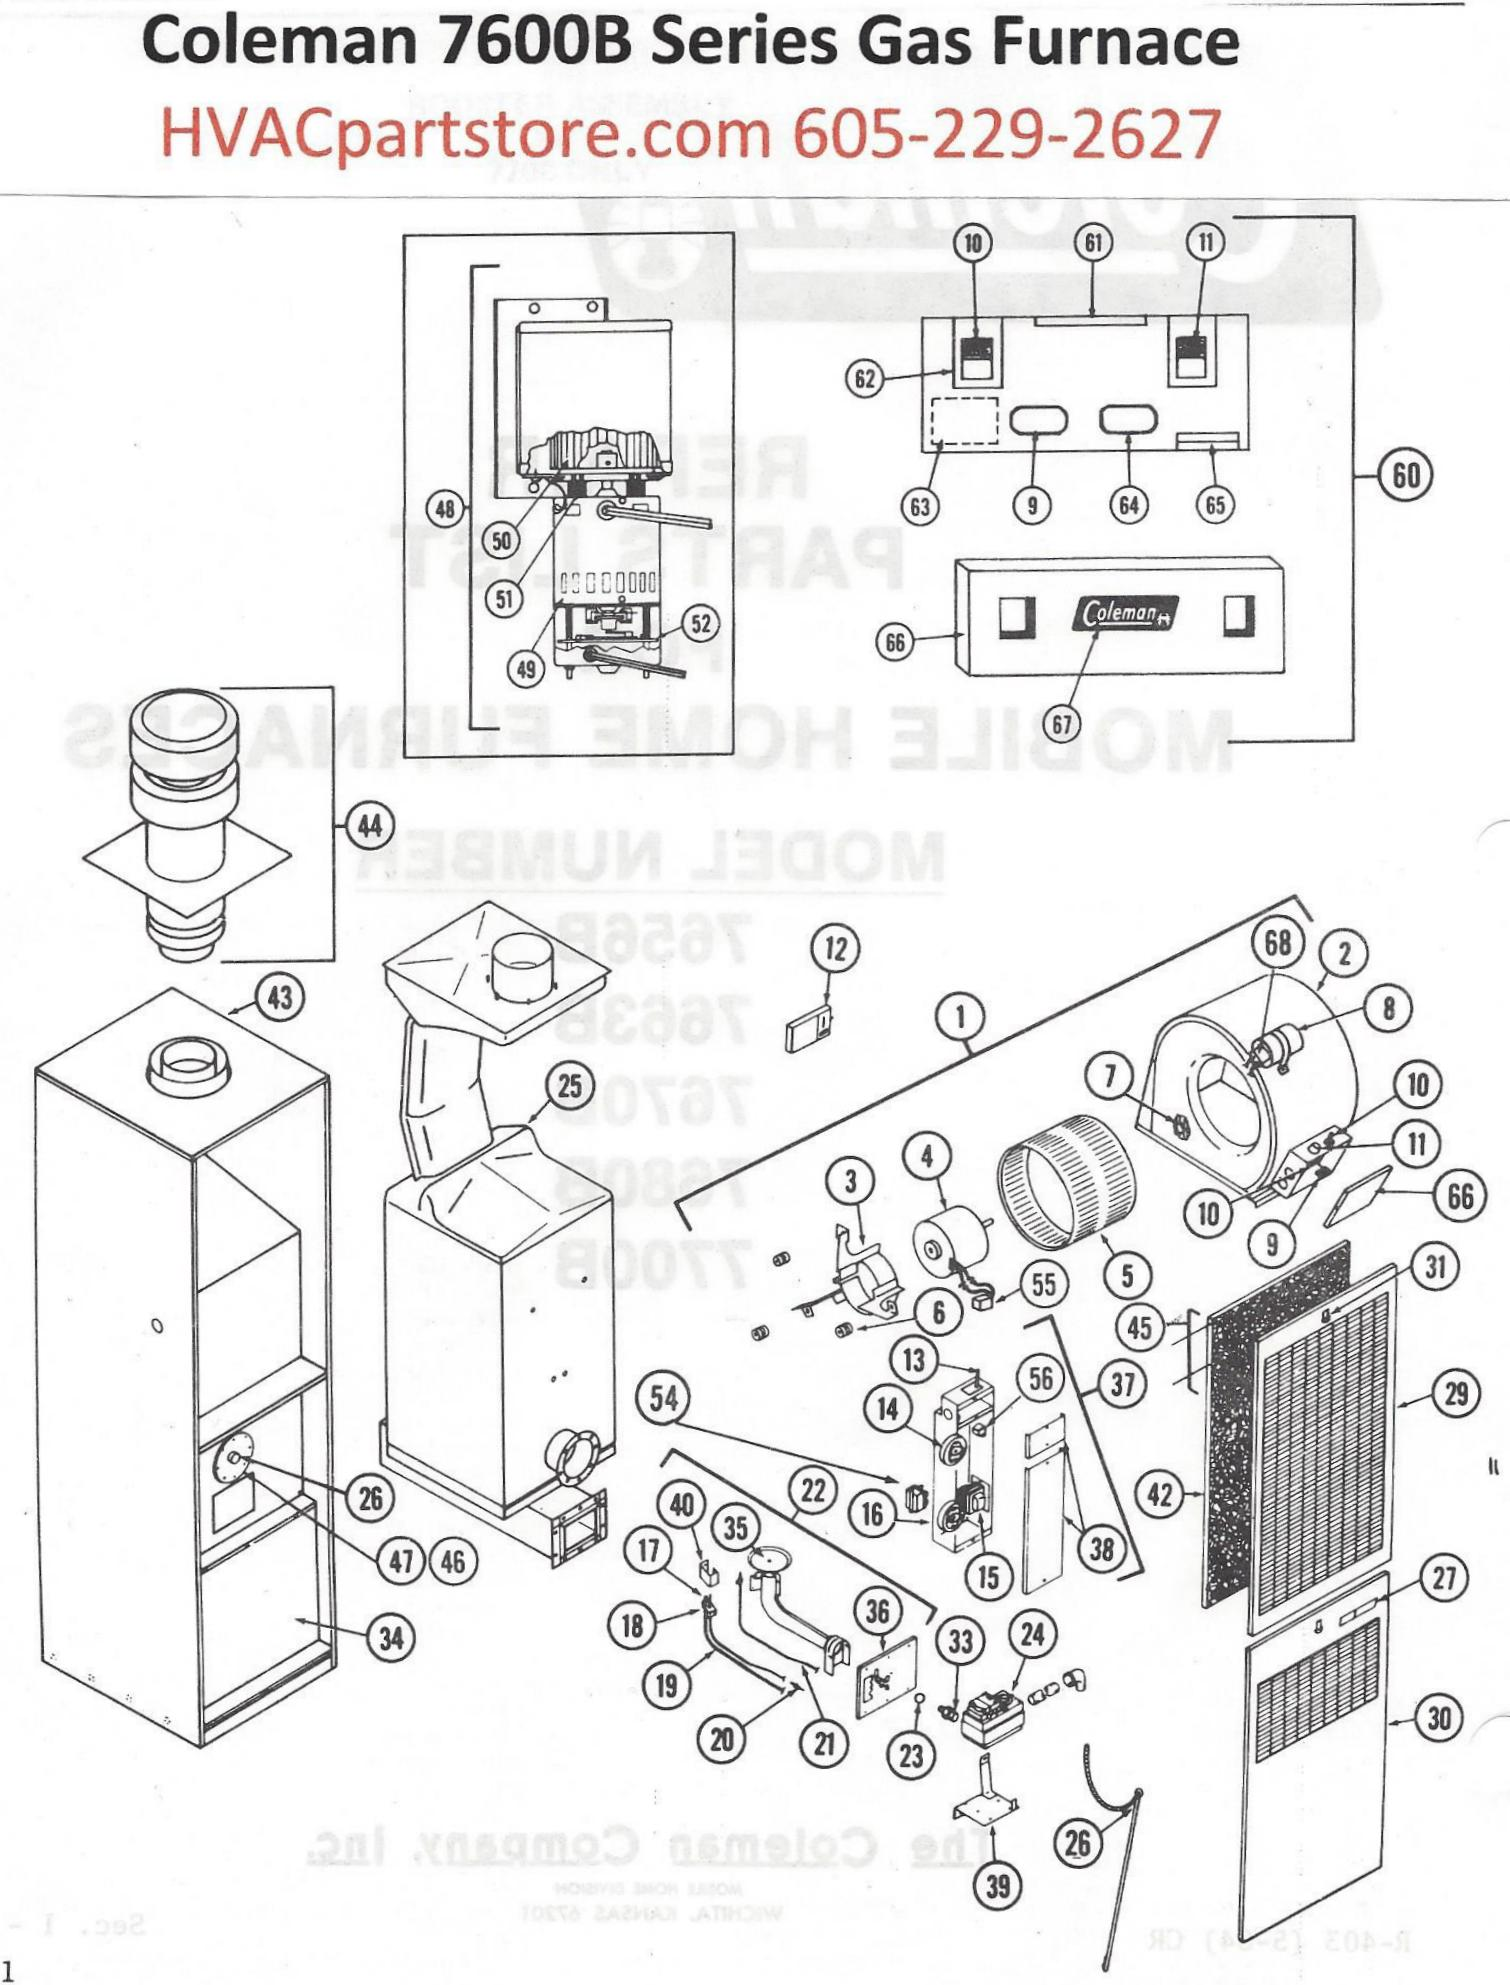 wiring diagram for coleman gas furnace – the wiring diagram,Wiring diagram,Wiring Diagram For Coleman Gas Furnace